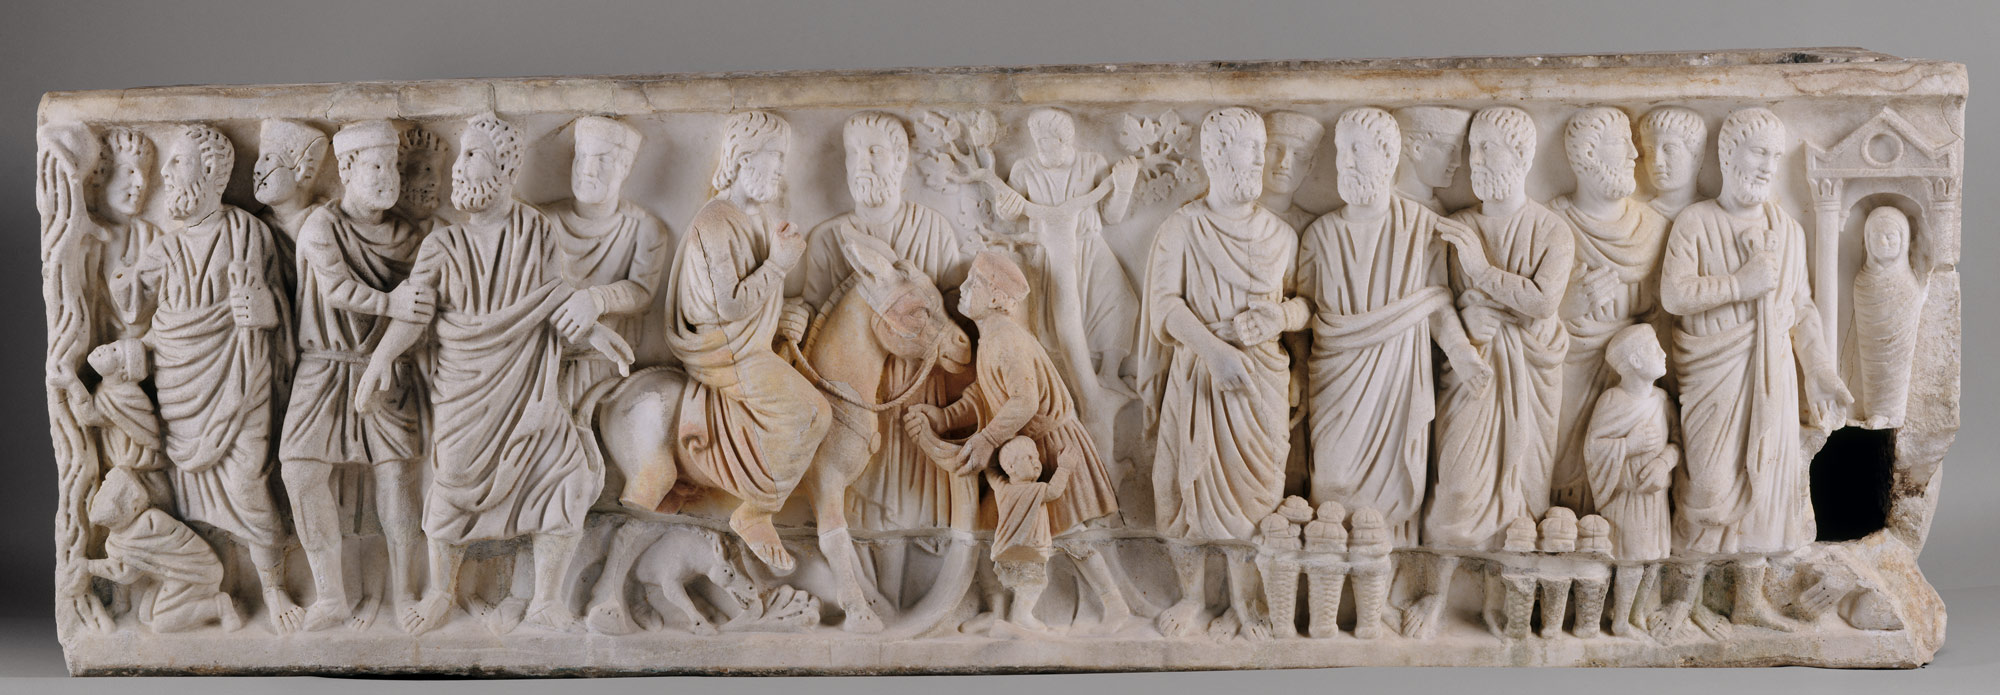 Image result for This marble sarcophagus (Sarcophagus with Scenes from the Lives of Saint Peter and Christ)